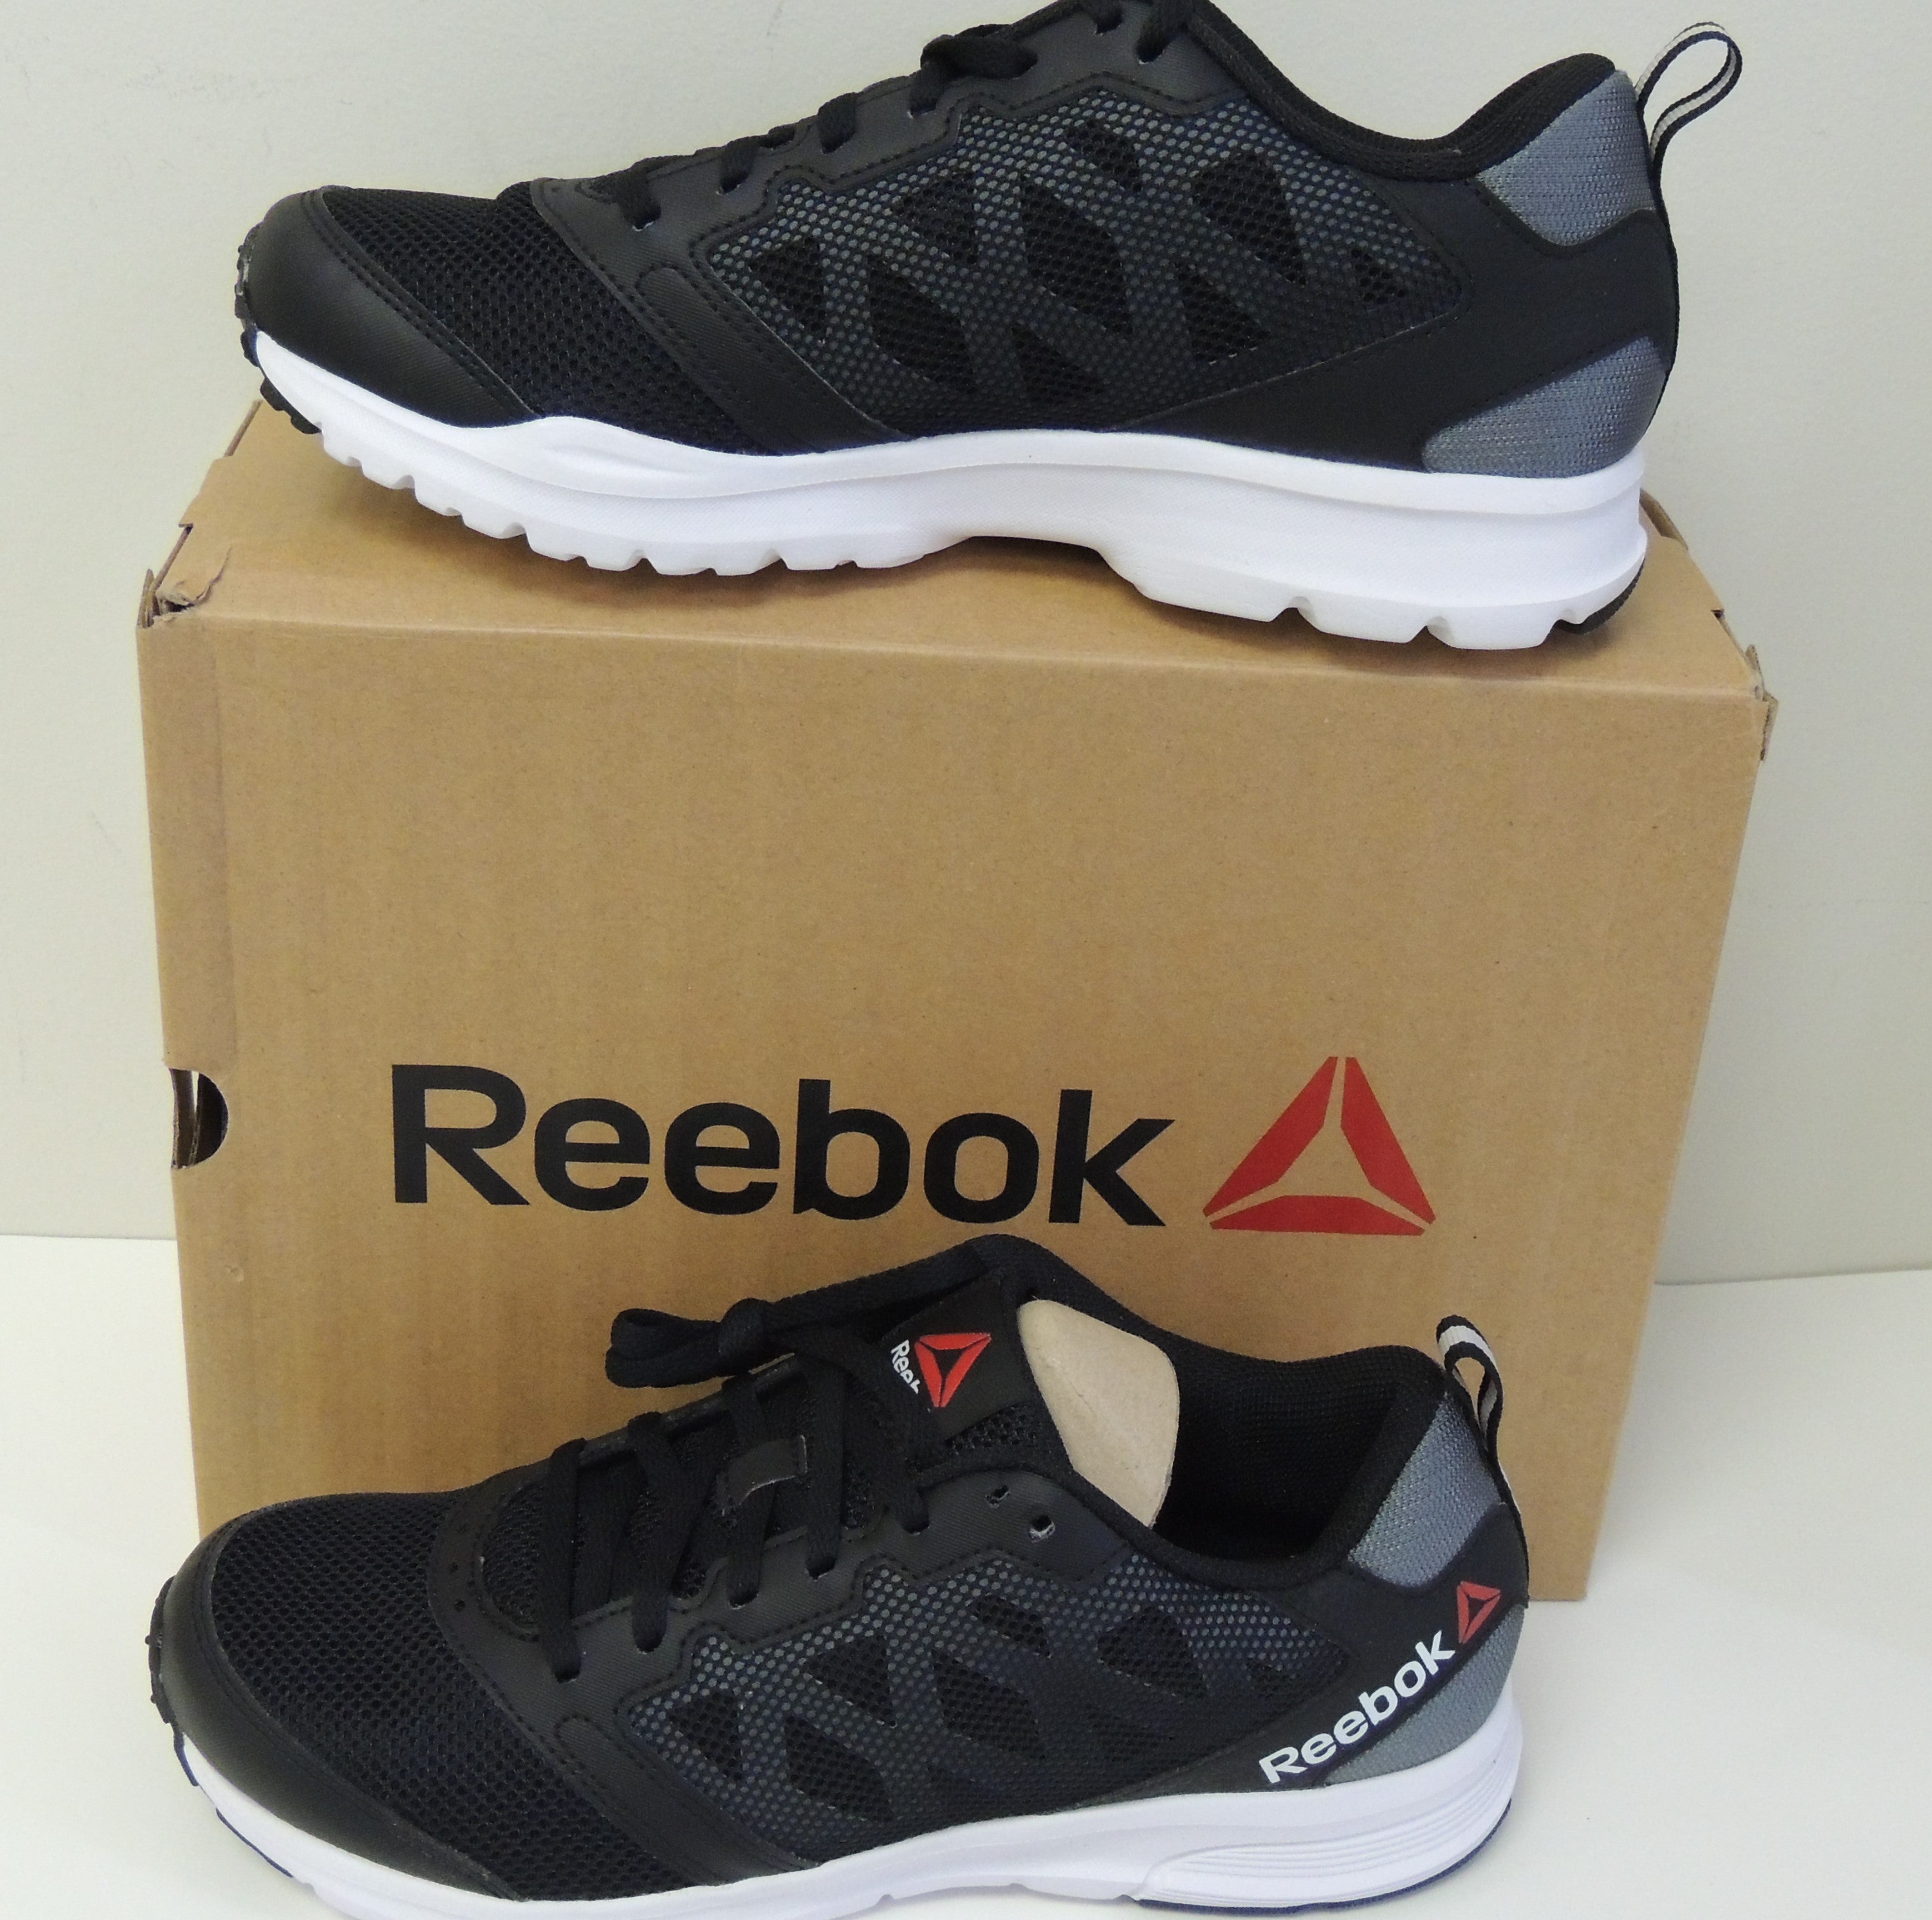 2 Shoes Reebok Women's 0 Running Blackwhite ar2652 Rush Size 0r1r4